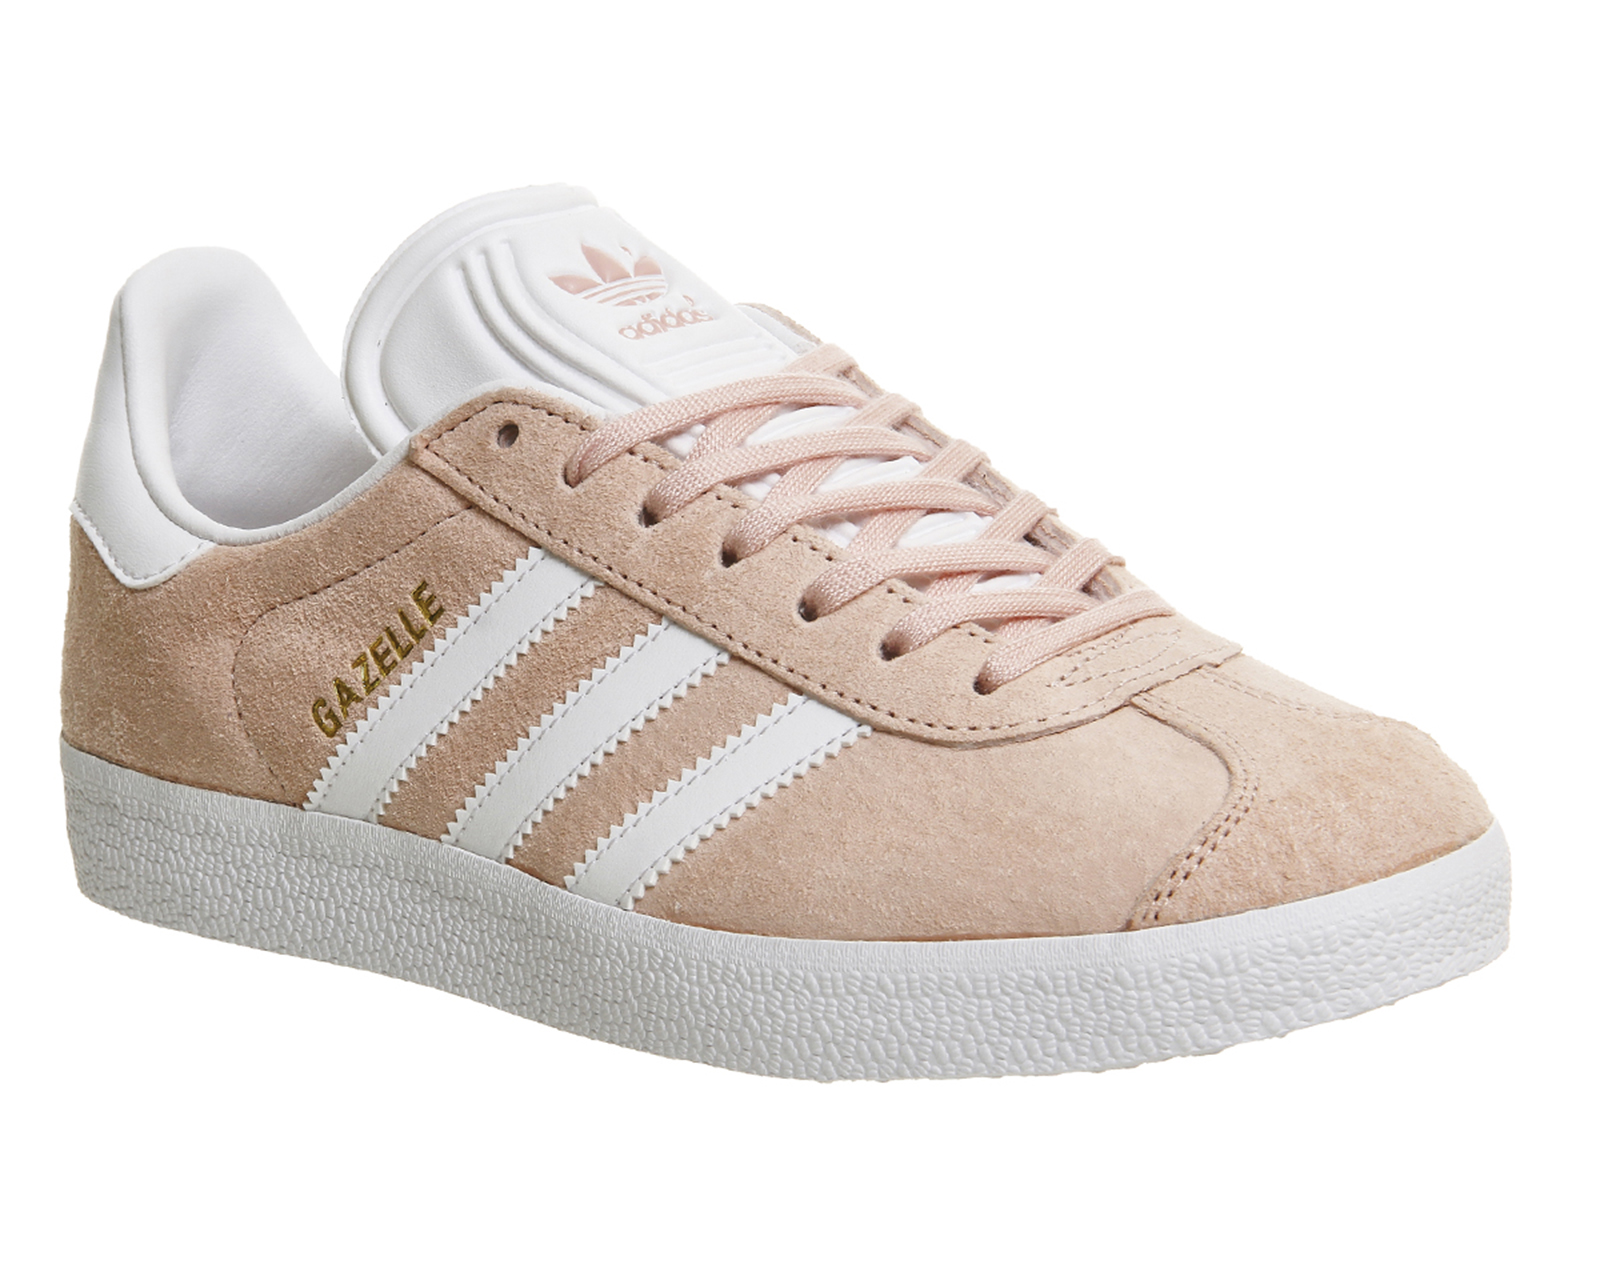 Adidas Gazelle Vapour Pink White - His trainers